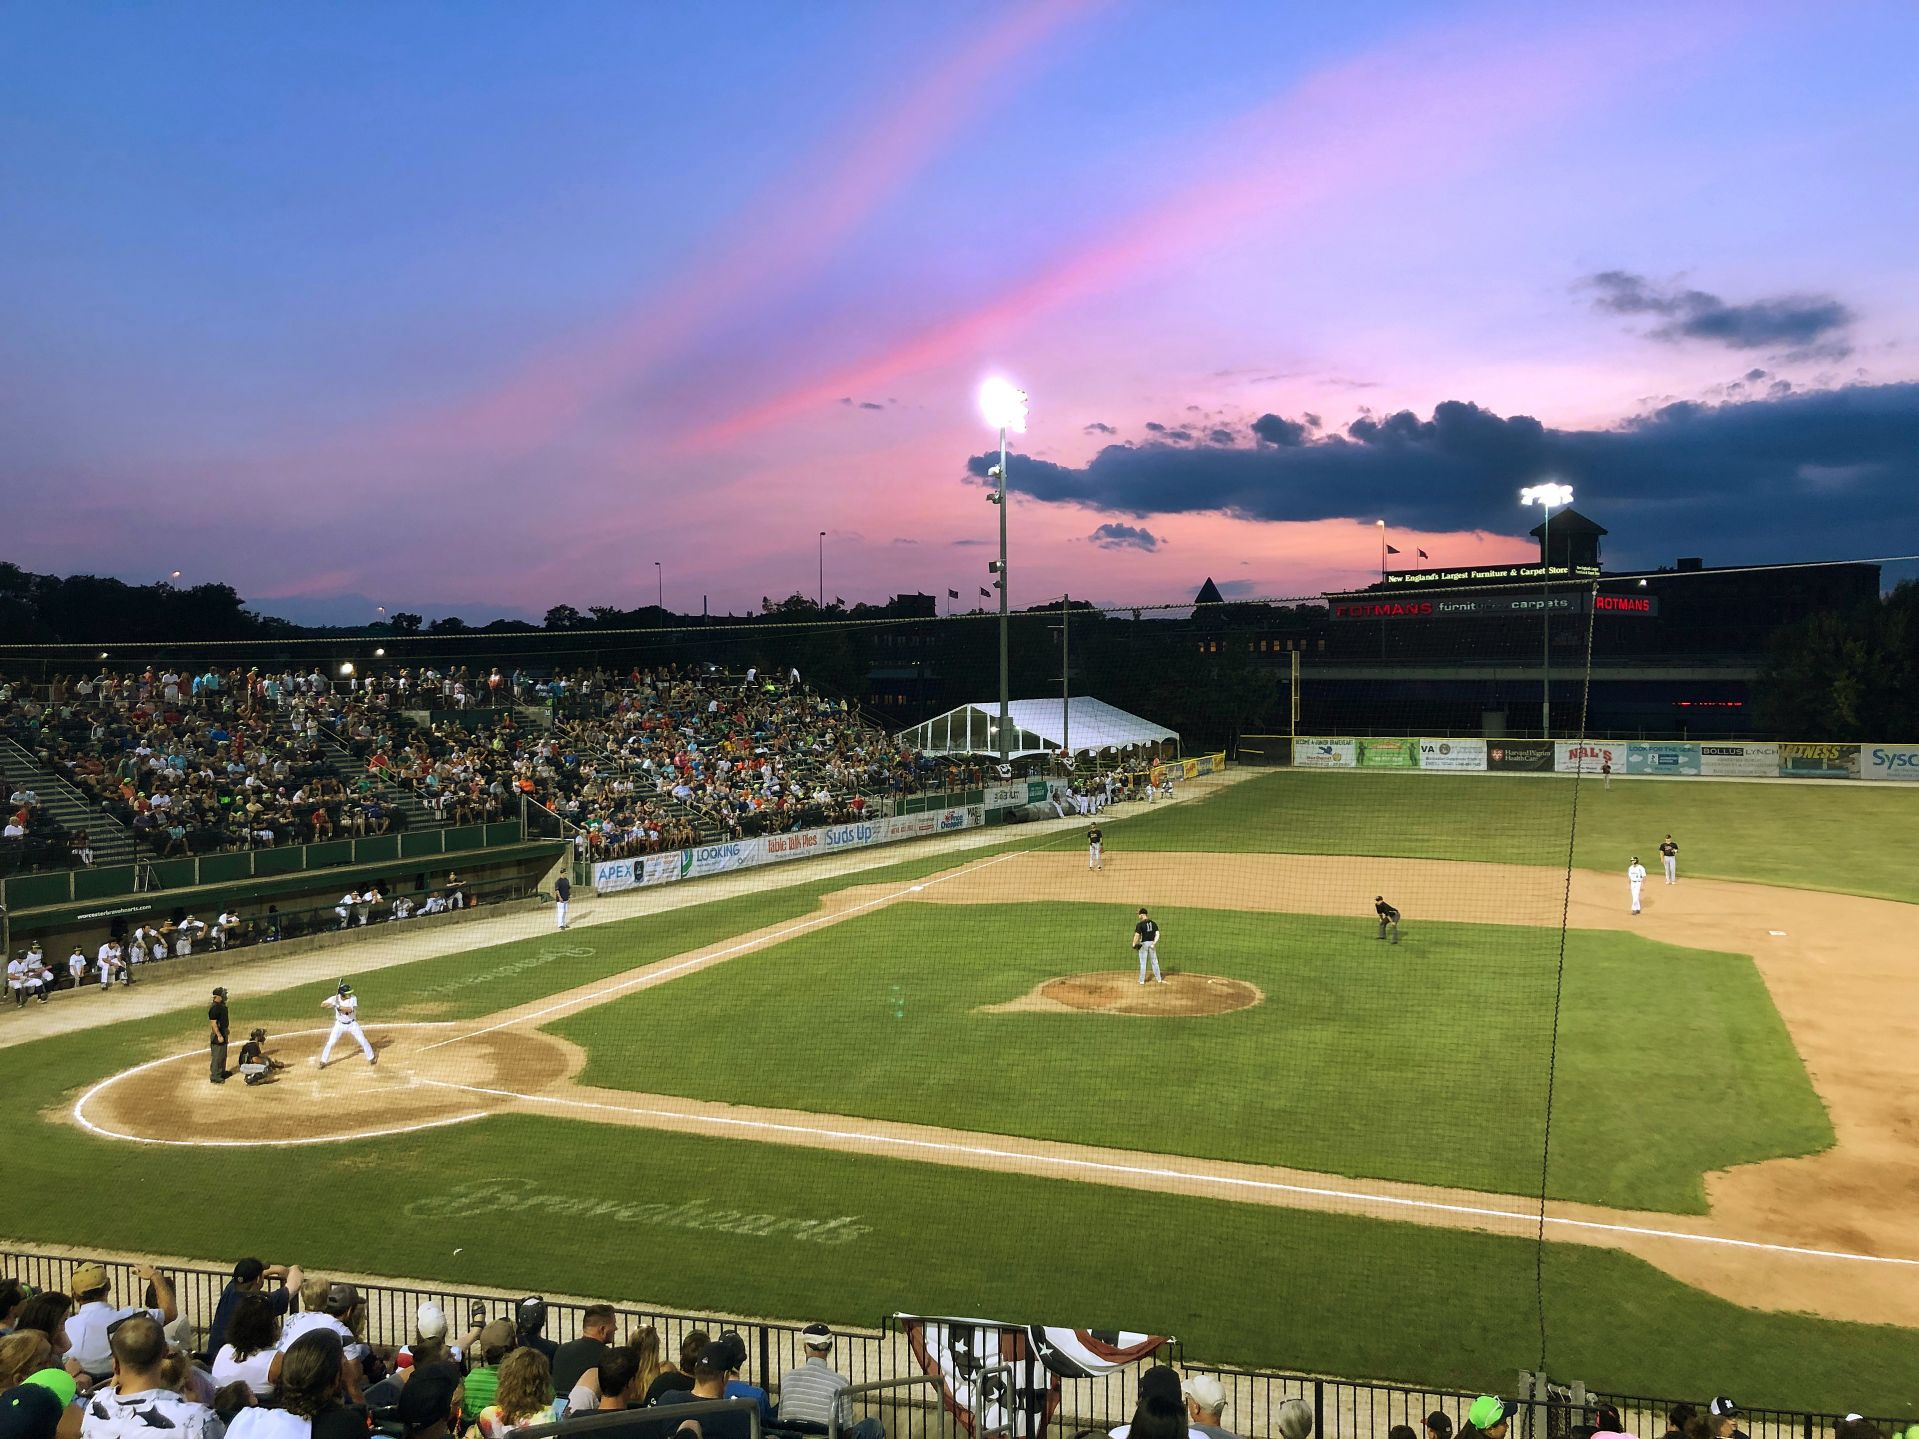 Before a big crowd at Nashua's historic Holman Stadium on Aug. 2, Nolan Collins '20 delivers a pitch to batterymate Jack Arend '20 as the Silver Knights take on Worcester in Futures League action on Aug. 2. (Photograph by Peggy Arend)